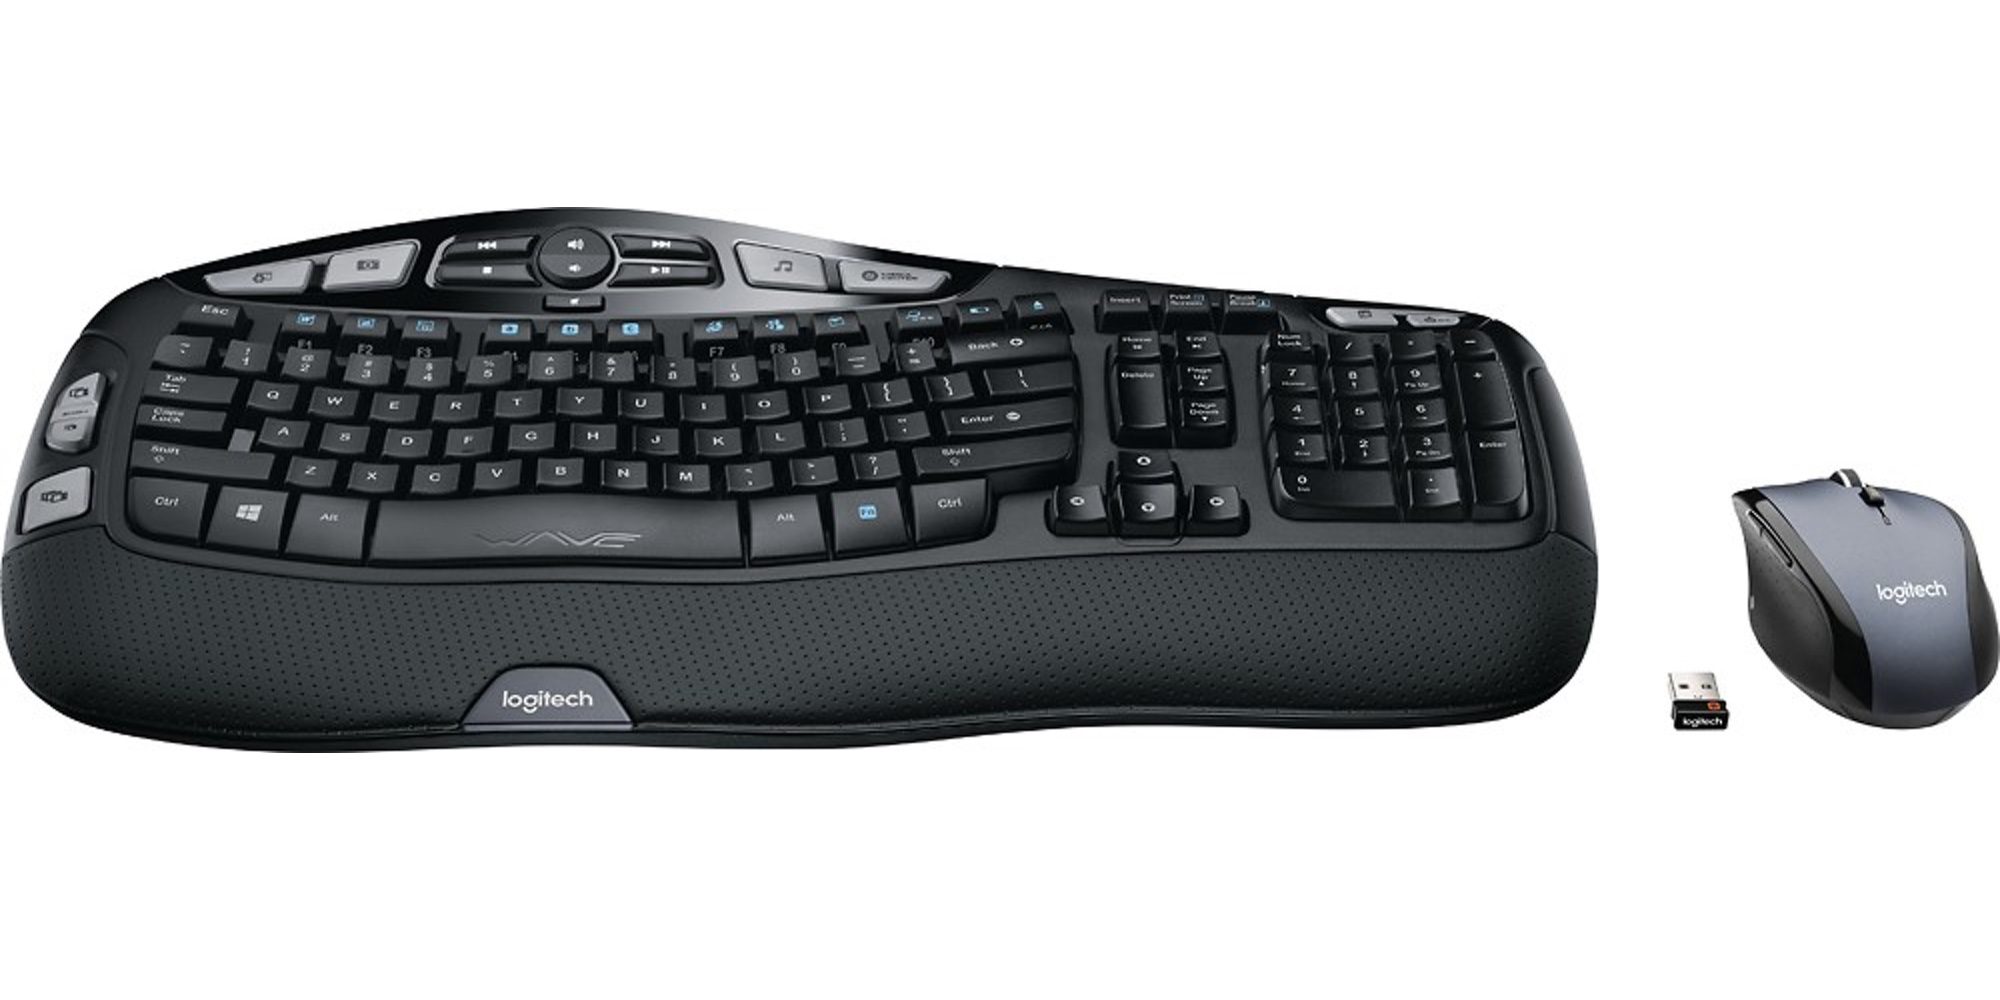 38928975565 Logitech MK570 Comfort Wave Keyboard and Mouse $35, today only - 9to5Toys